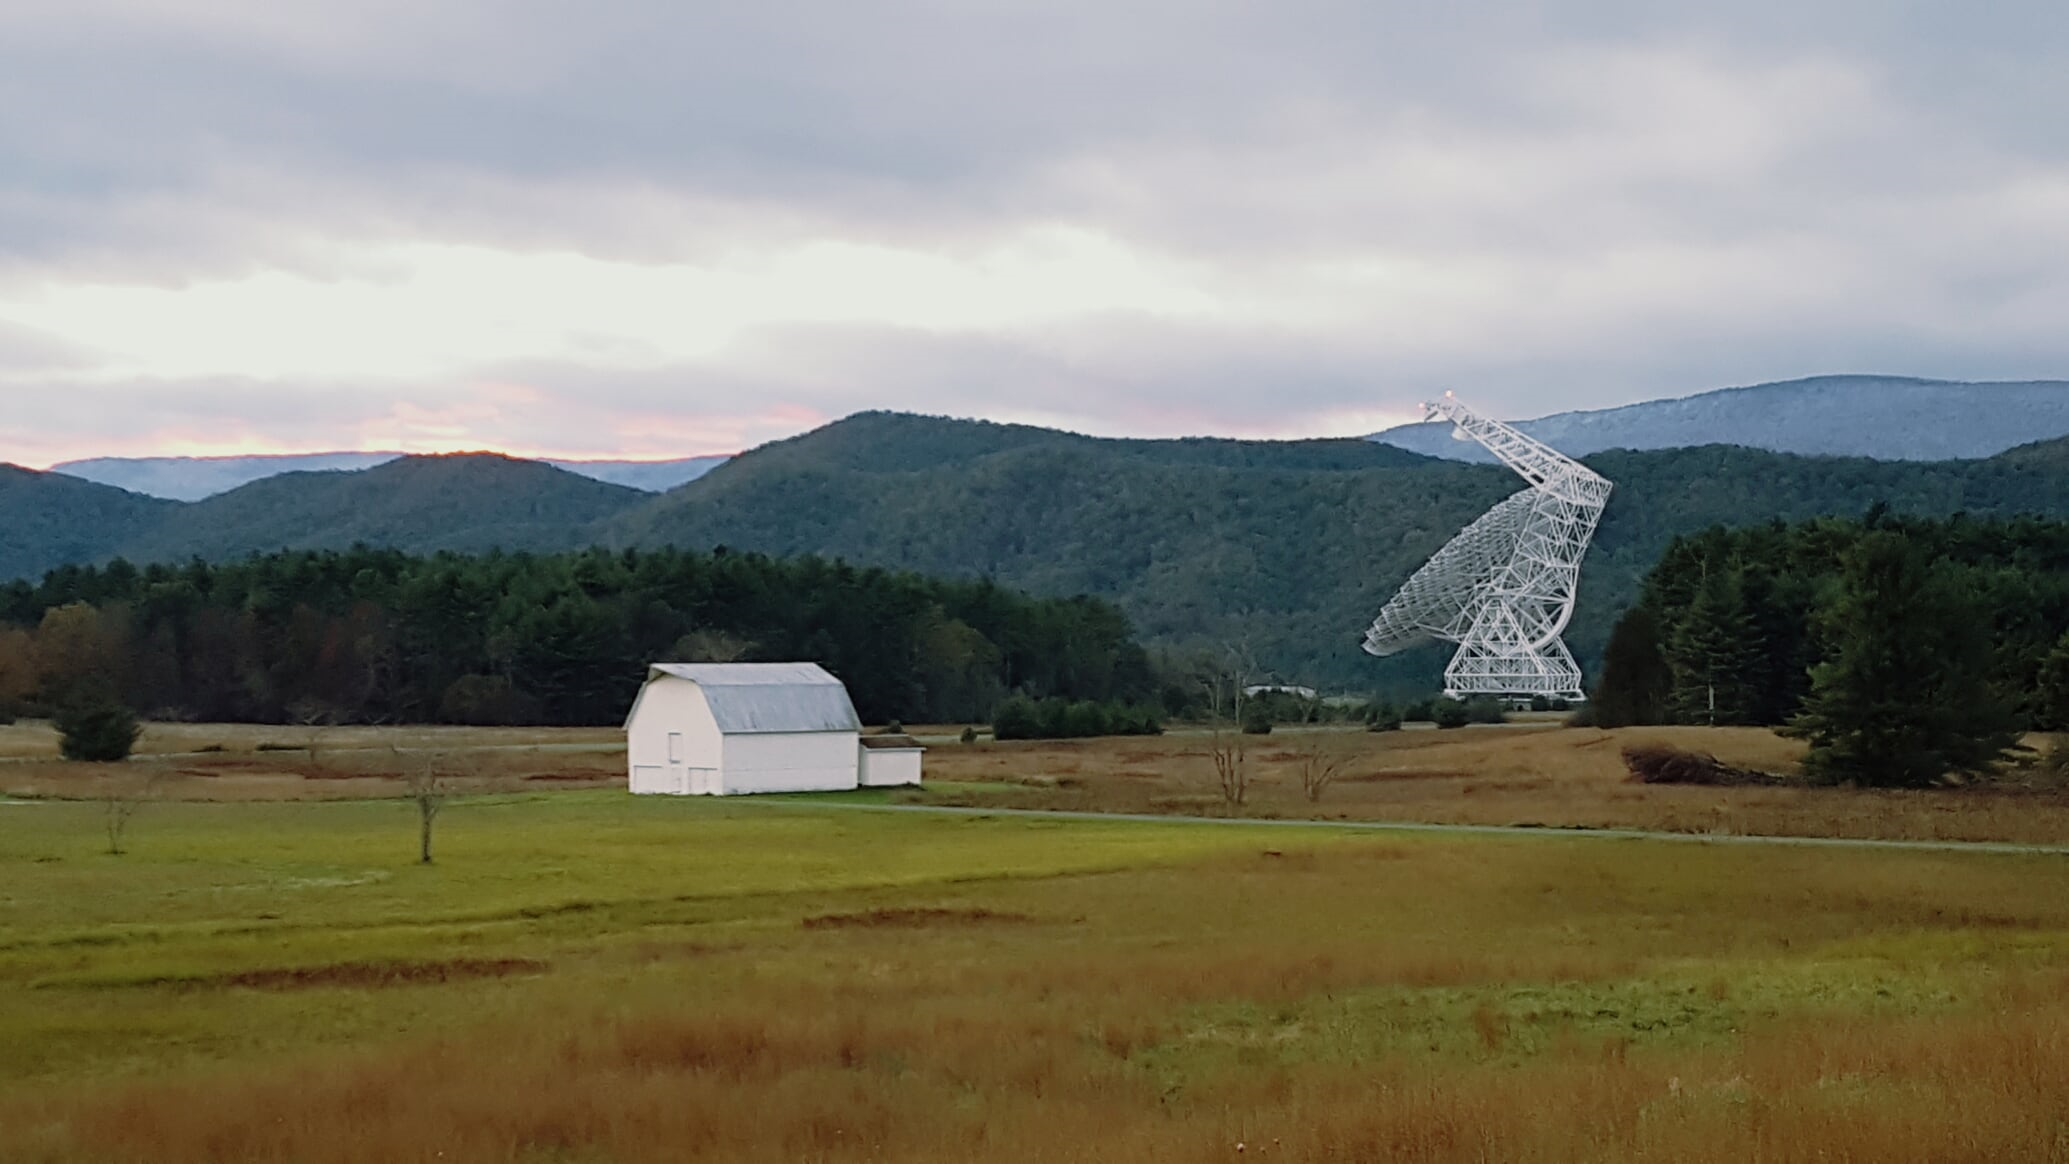 The Robert C. Byrd Green Bank Telescope (GBT) on a cloudy fall day in West Virginia.